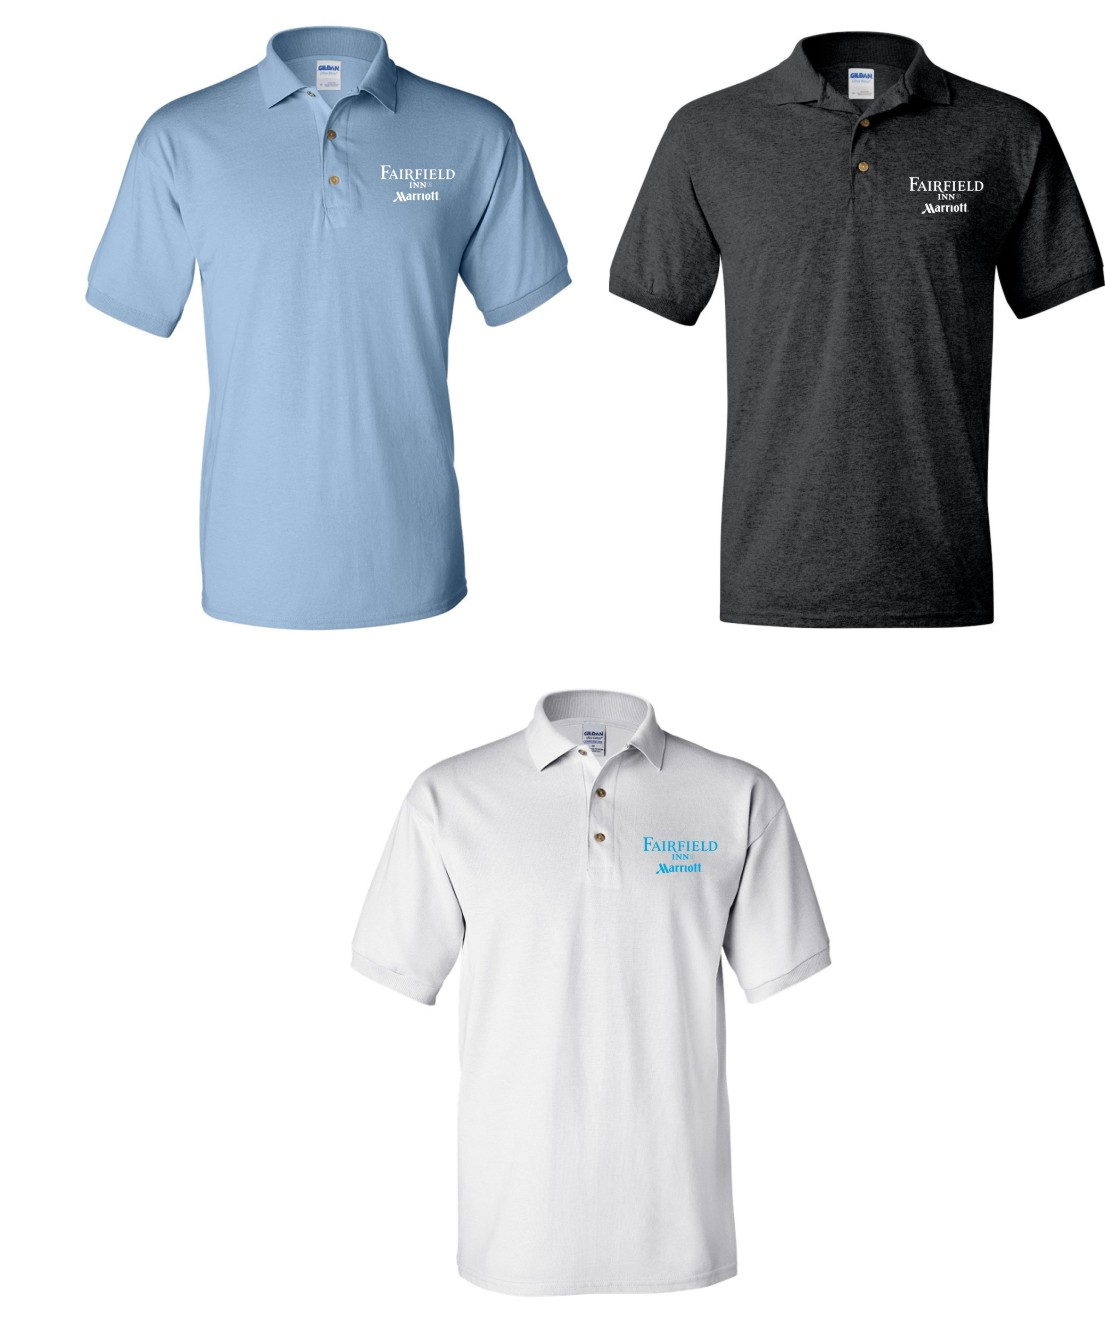 Polo Shirts. (Light Blue, Dark Heather and White)   Screened Logo.  DryBlend Fabric 50/50 - 3-Button Placket - Knitted Collar/Cuffs